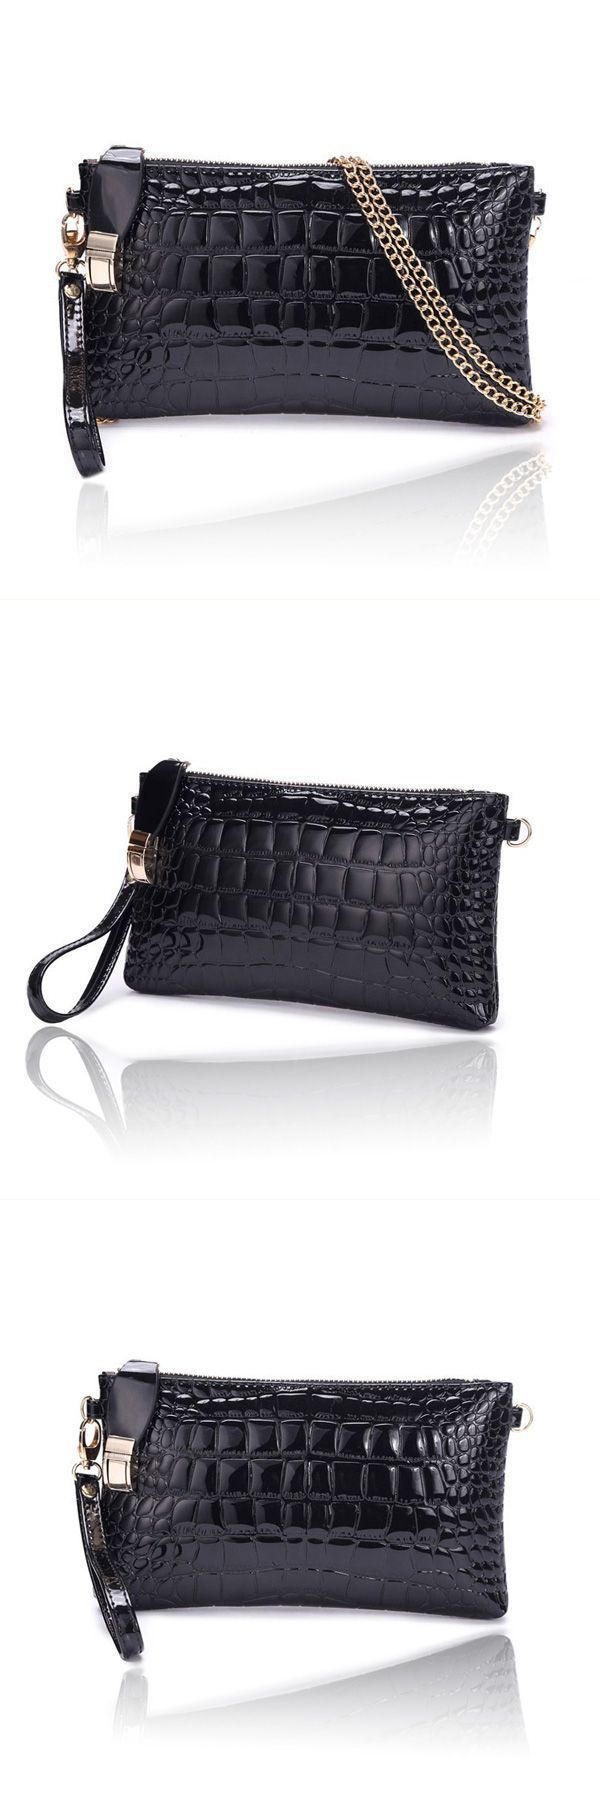 Women 8217 S Crocodile Pattern Chain Clutch Handbag Shoulder